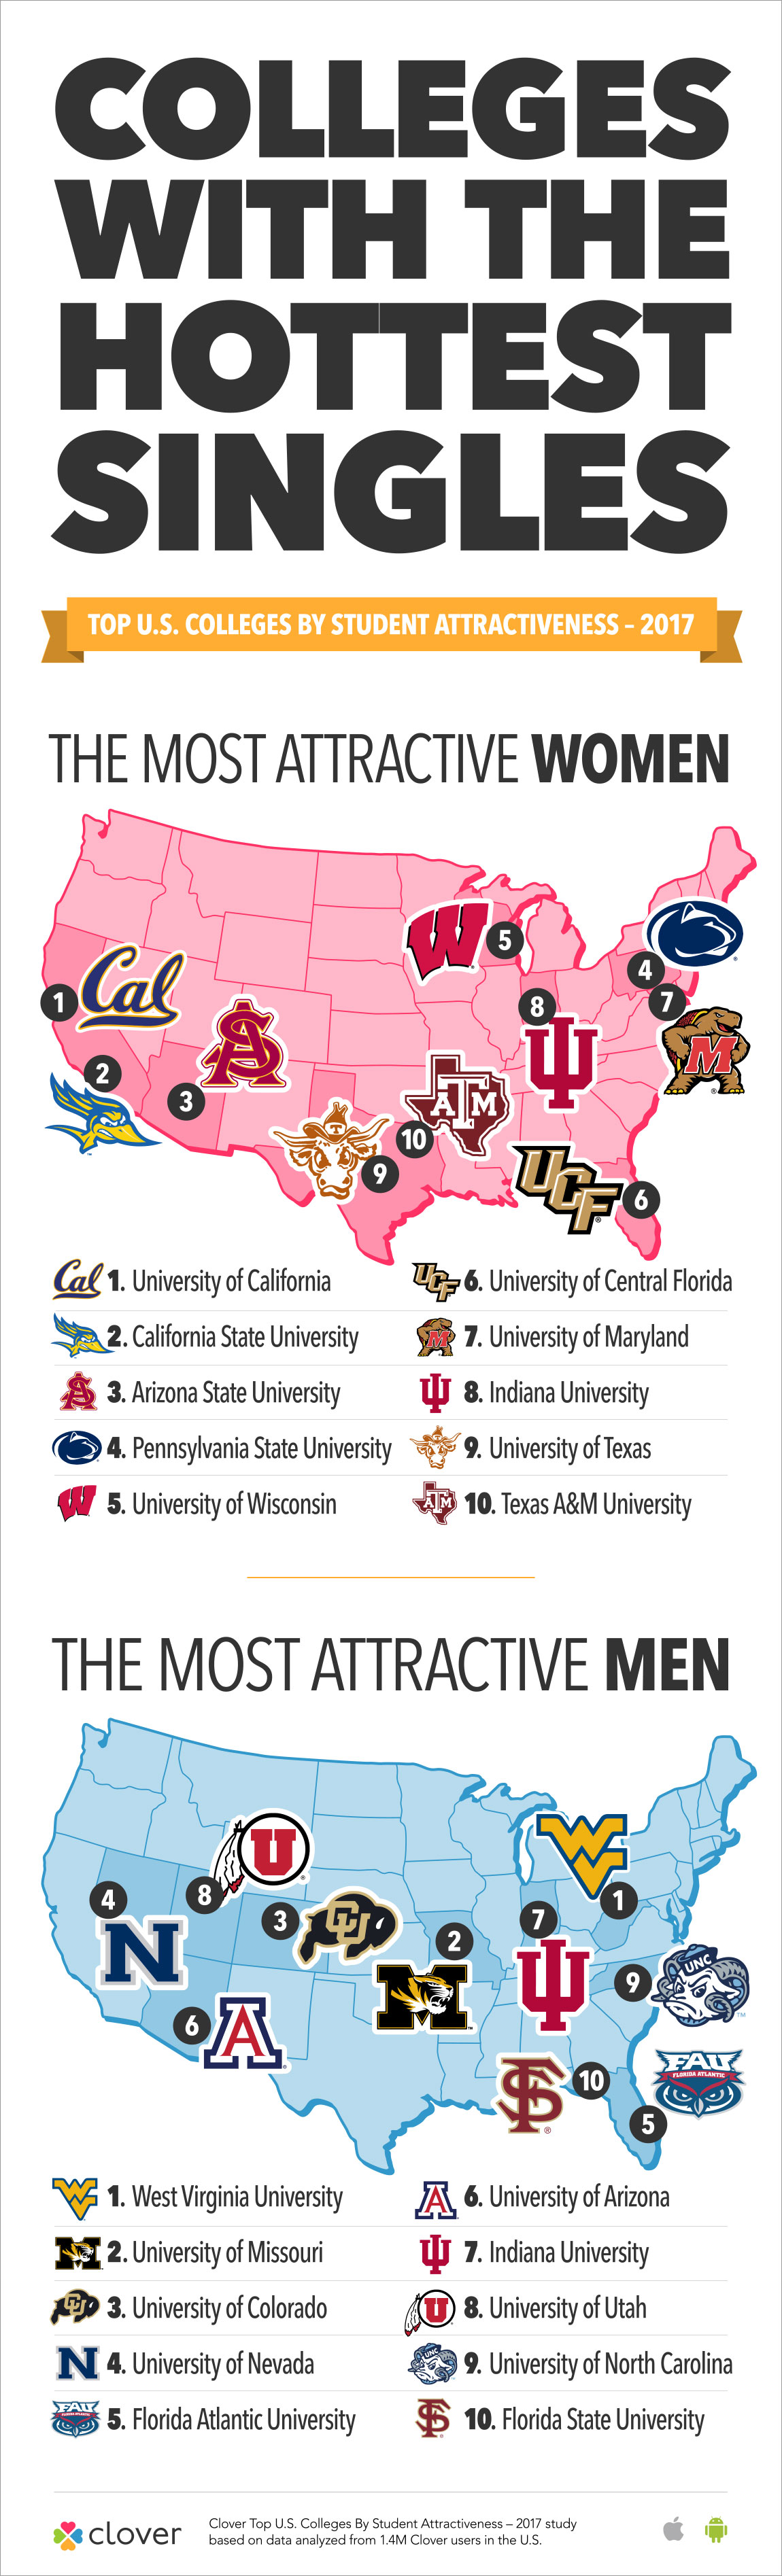 Clover: Colleges With The Hottest Singles